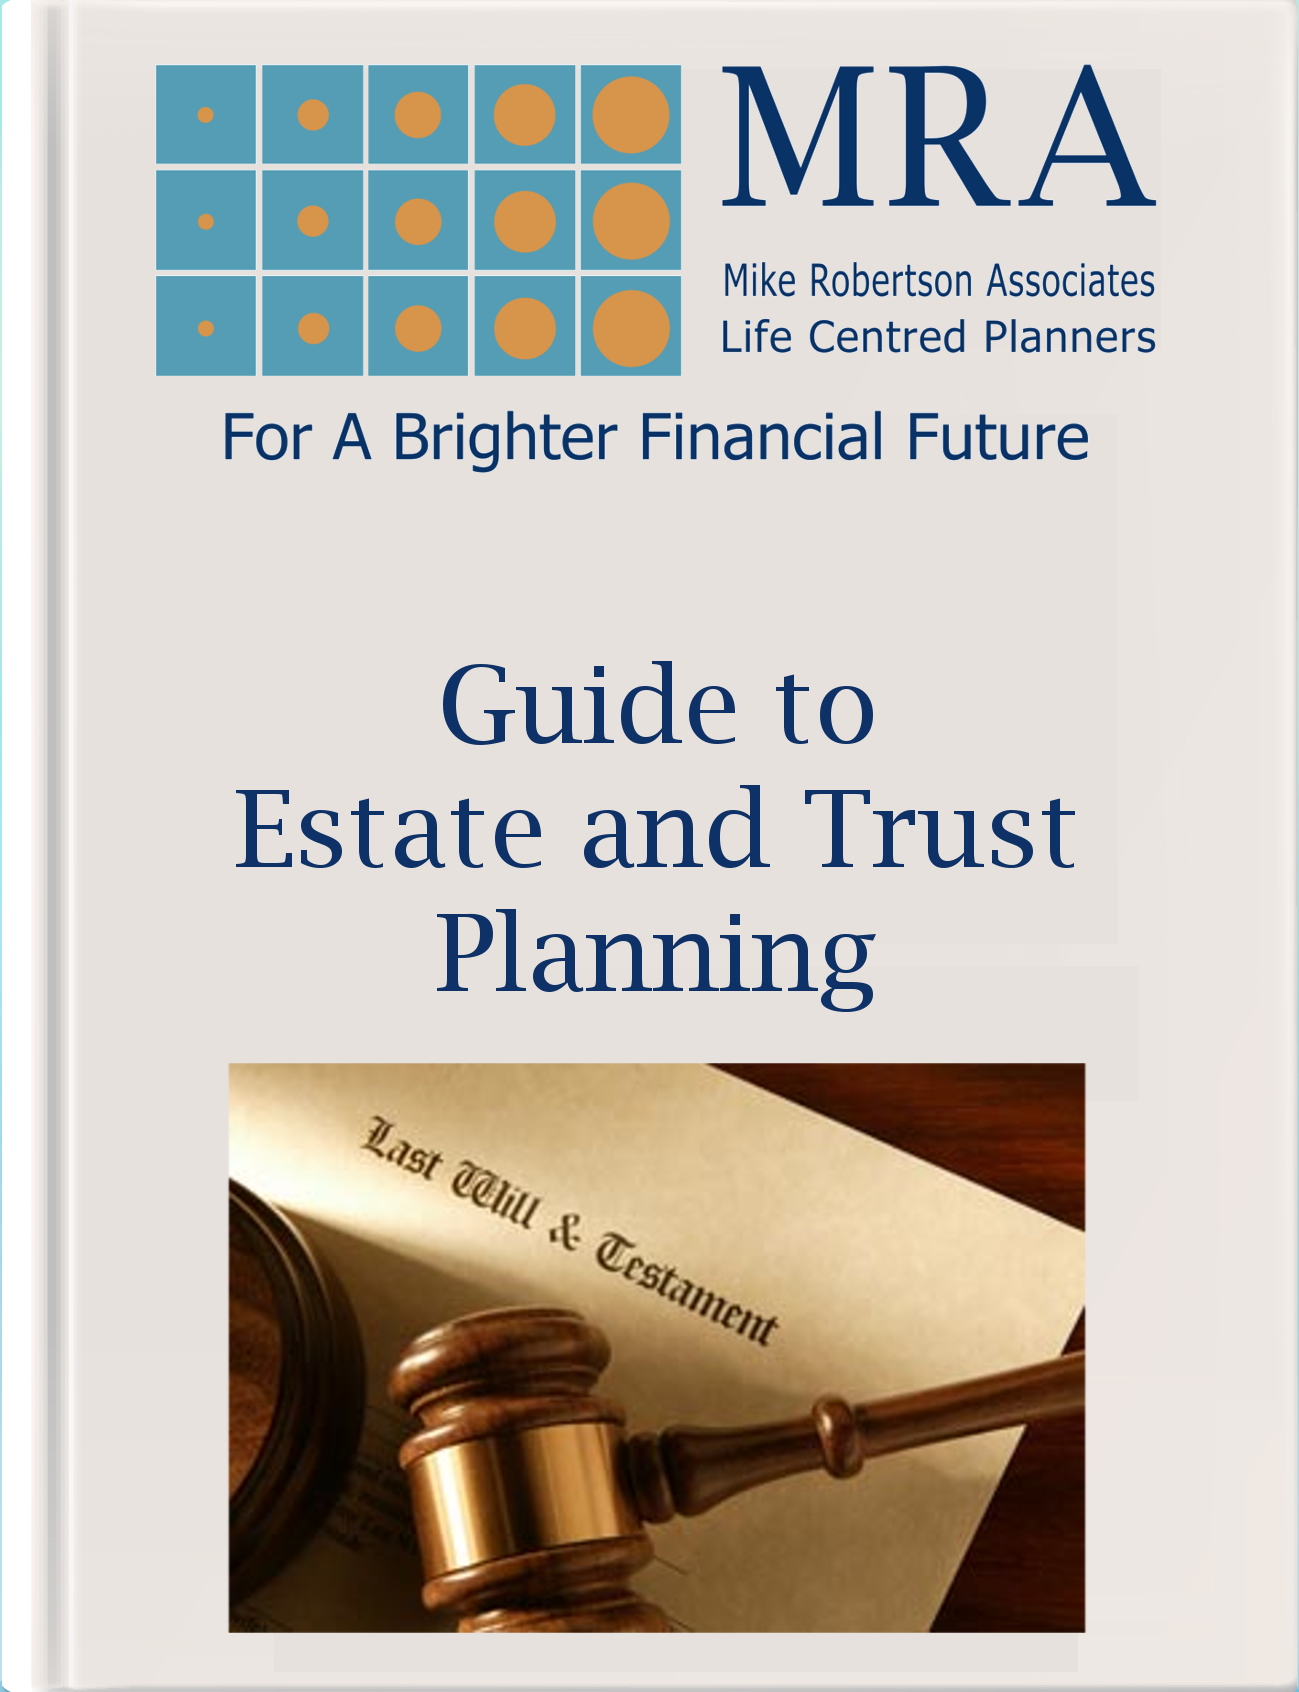 Download our Guide to Estate and Trust Planning